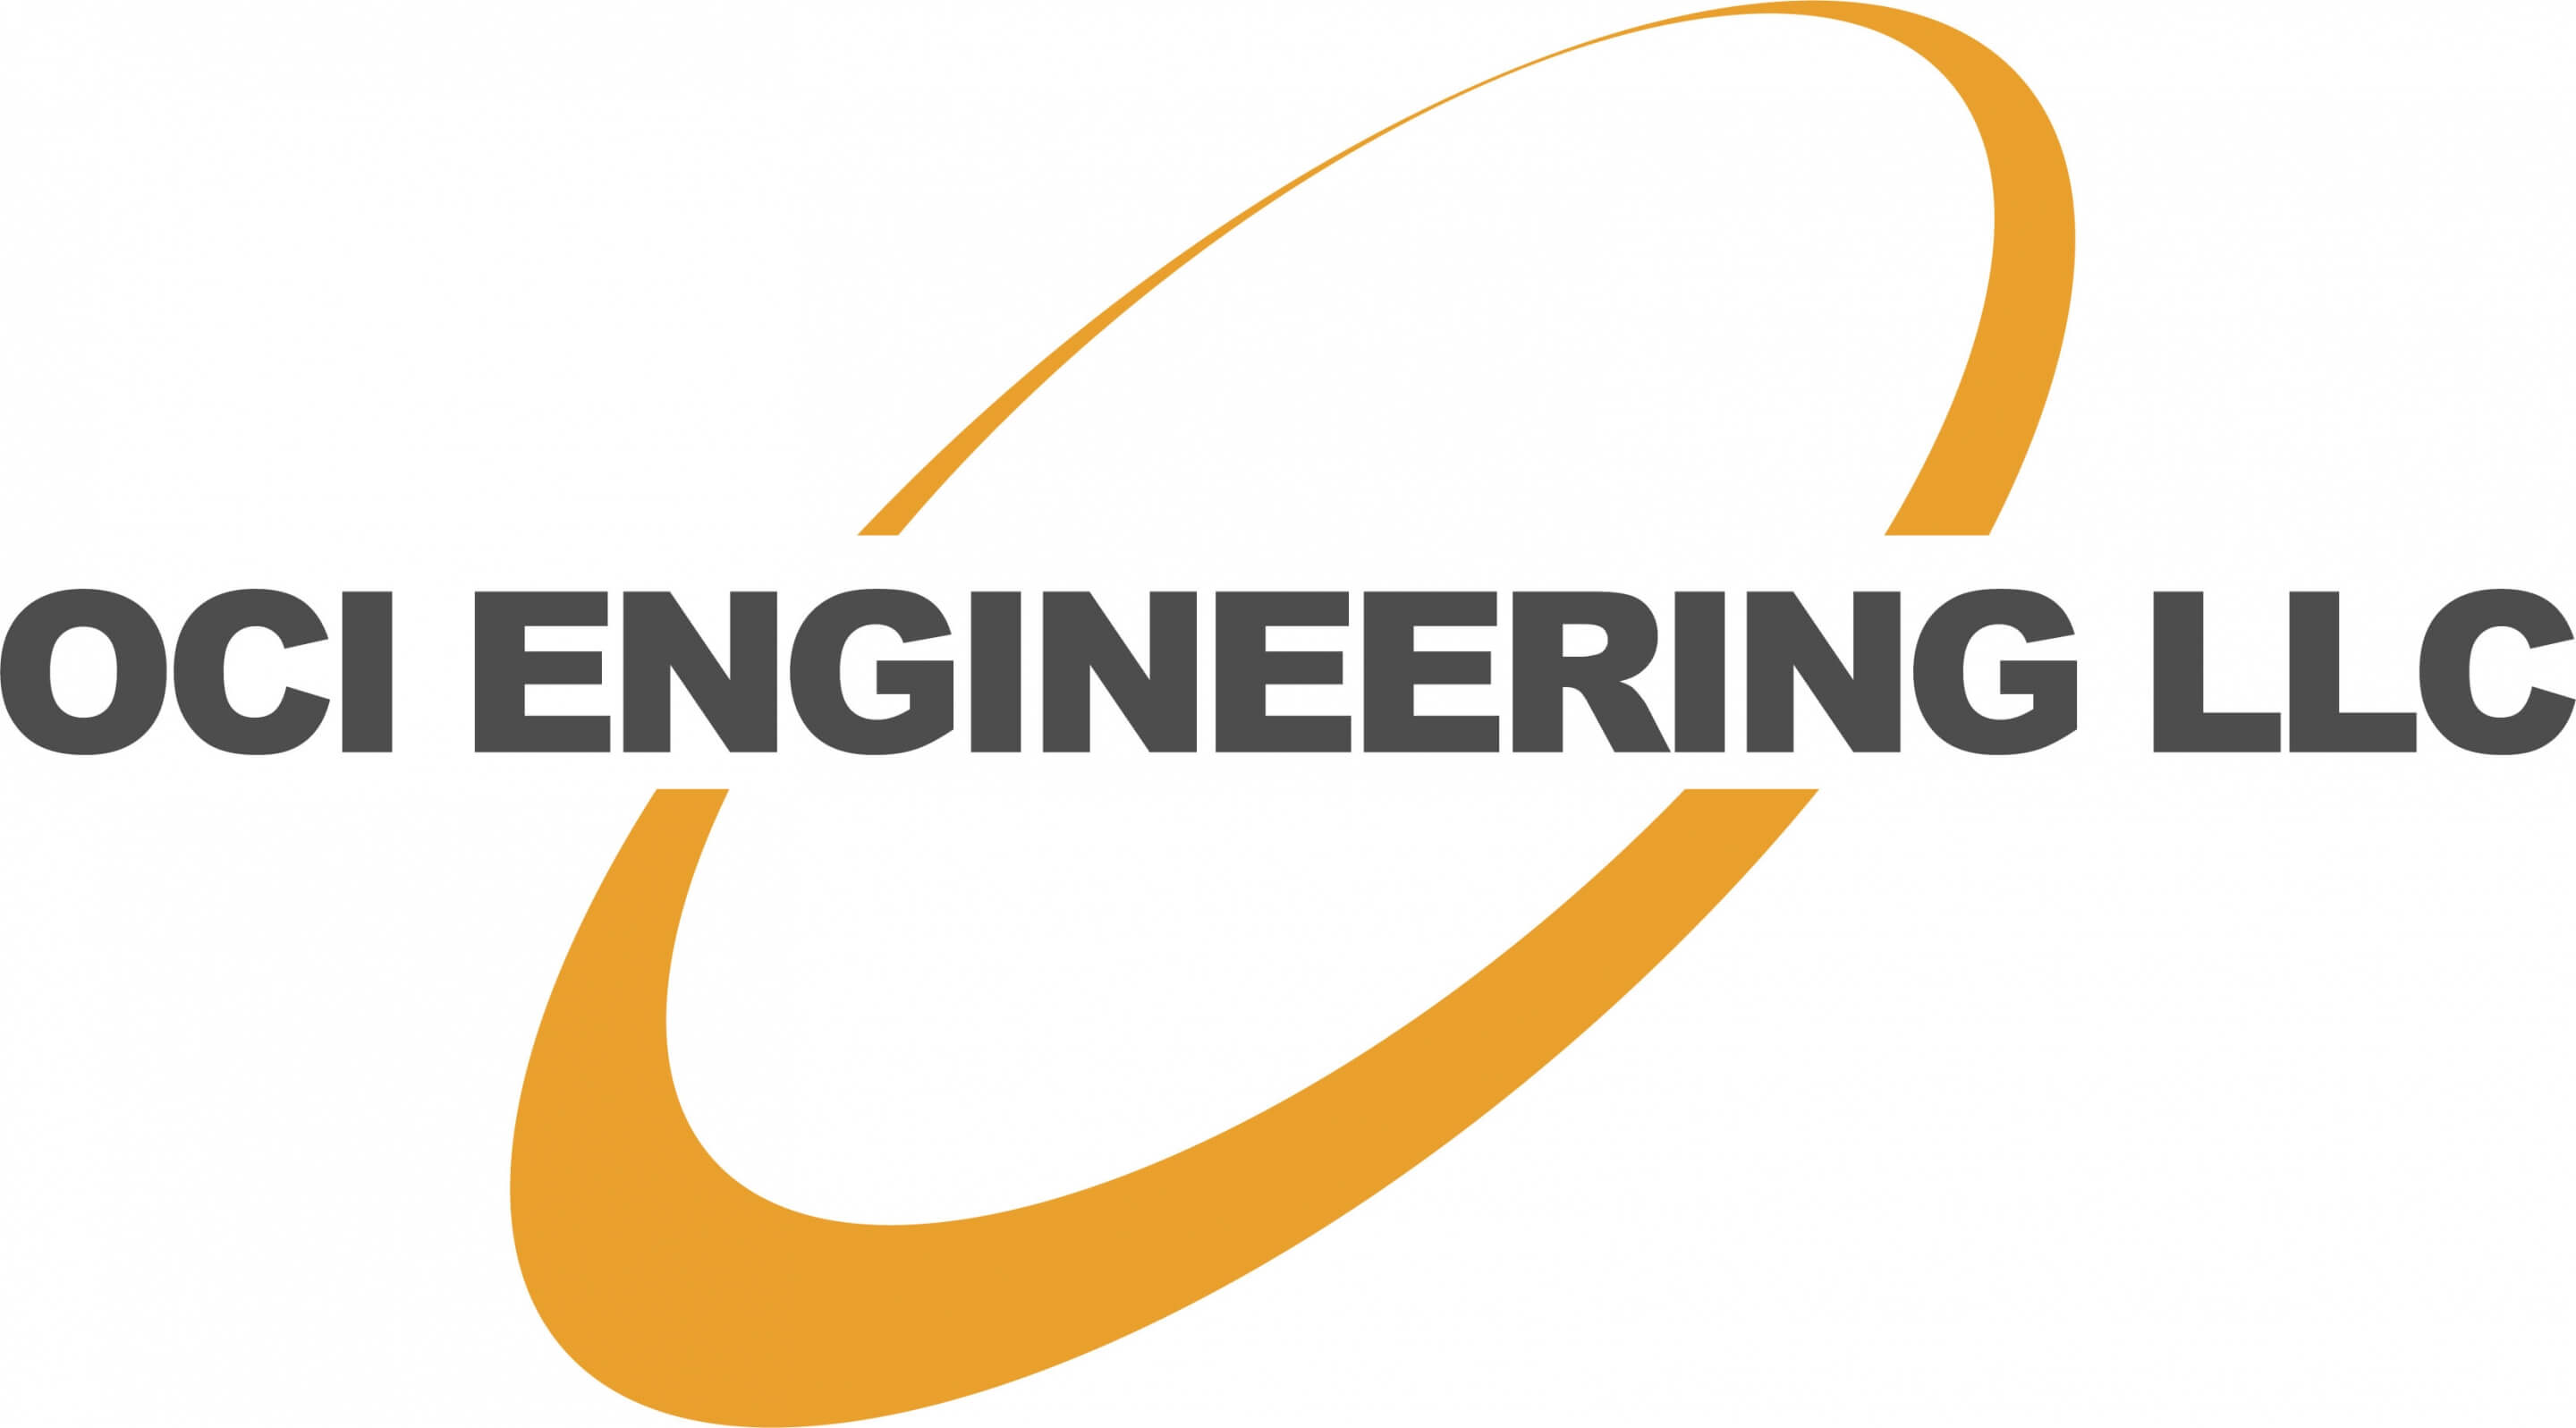 OCI ENGINEERING